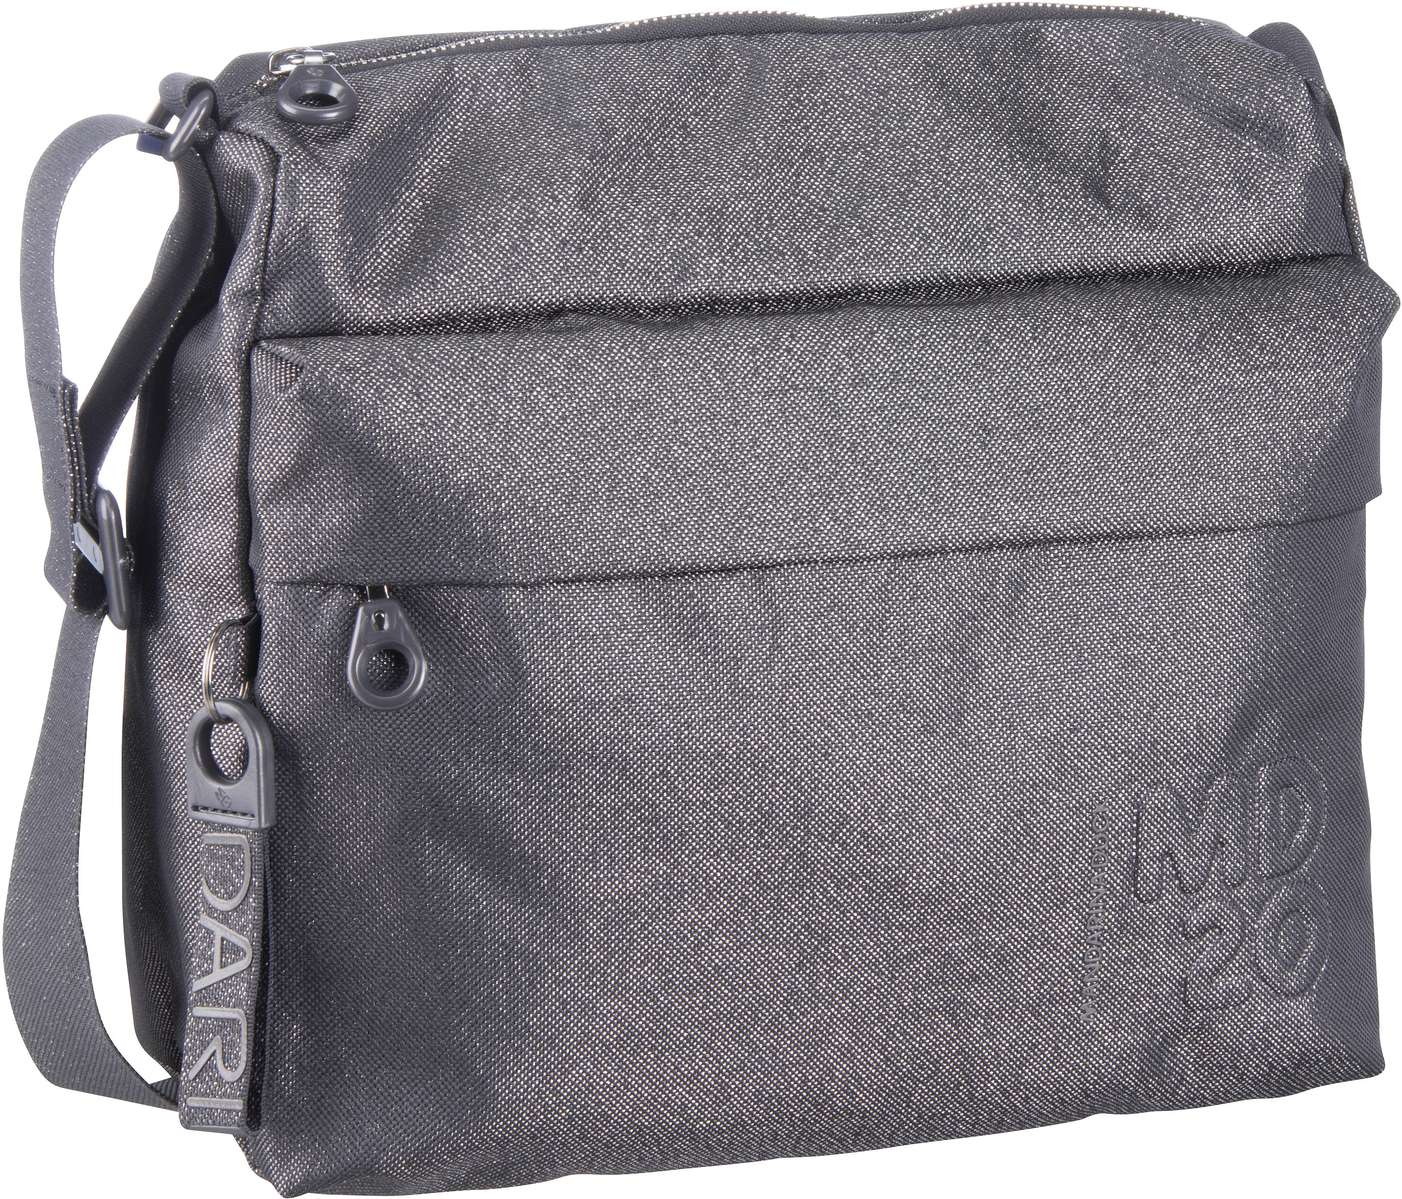 Umhängetasche MD20 Lux Crossover Bag QNTT4 Lead